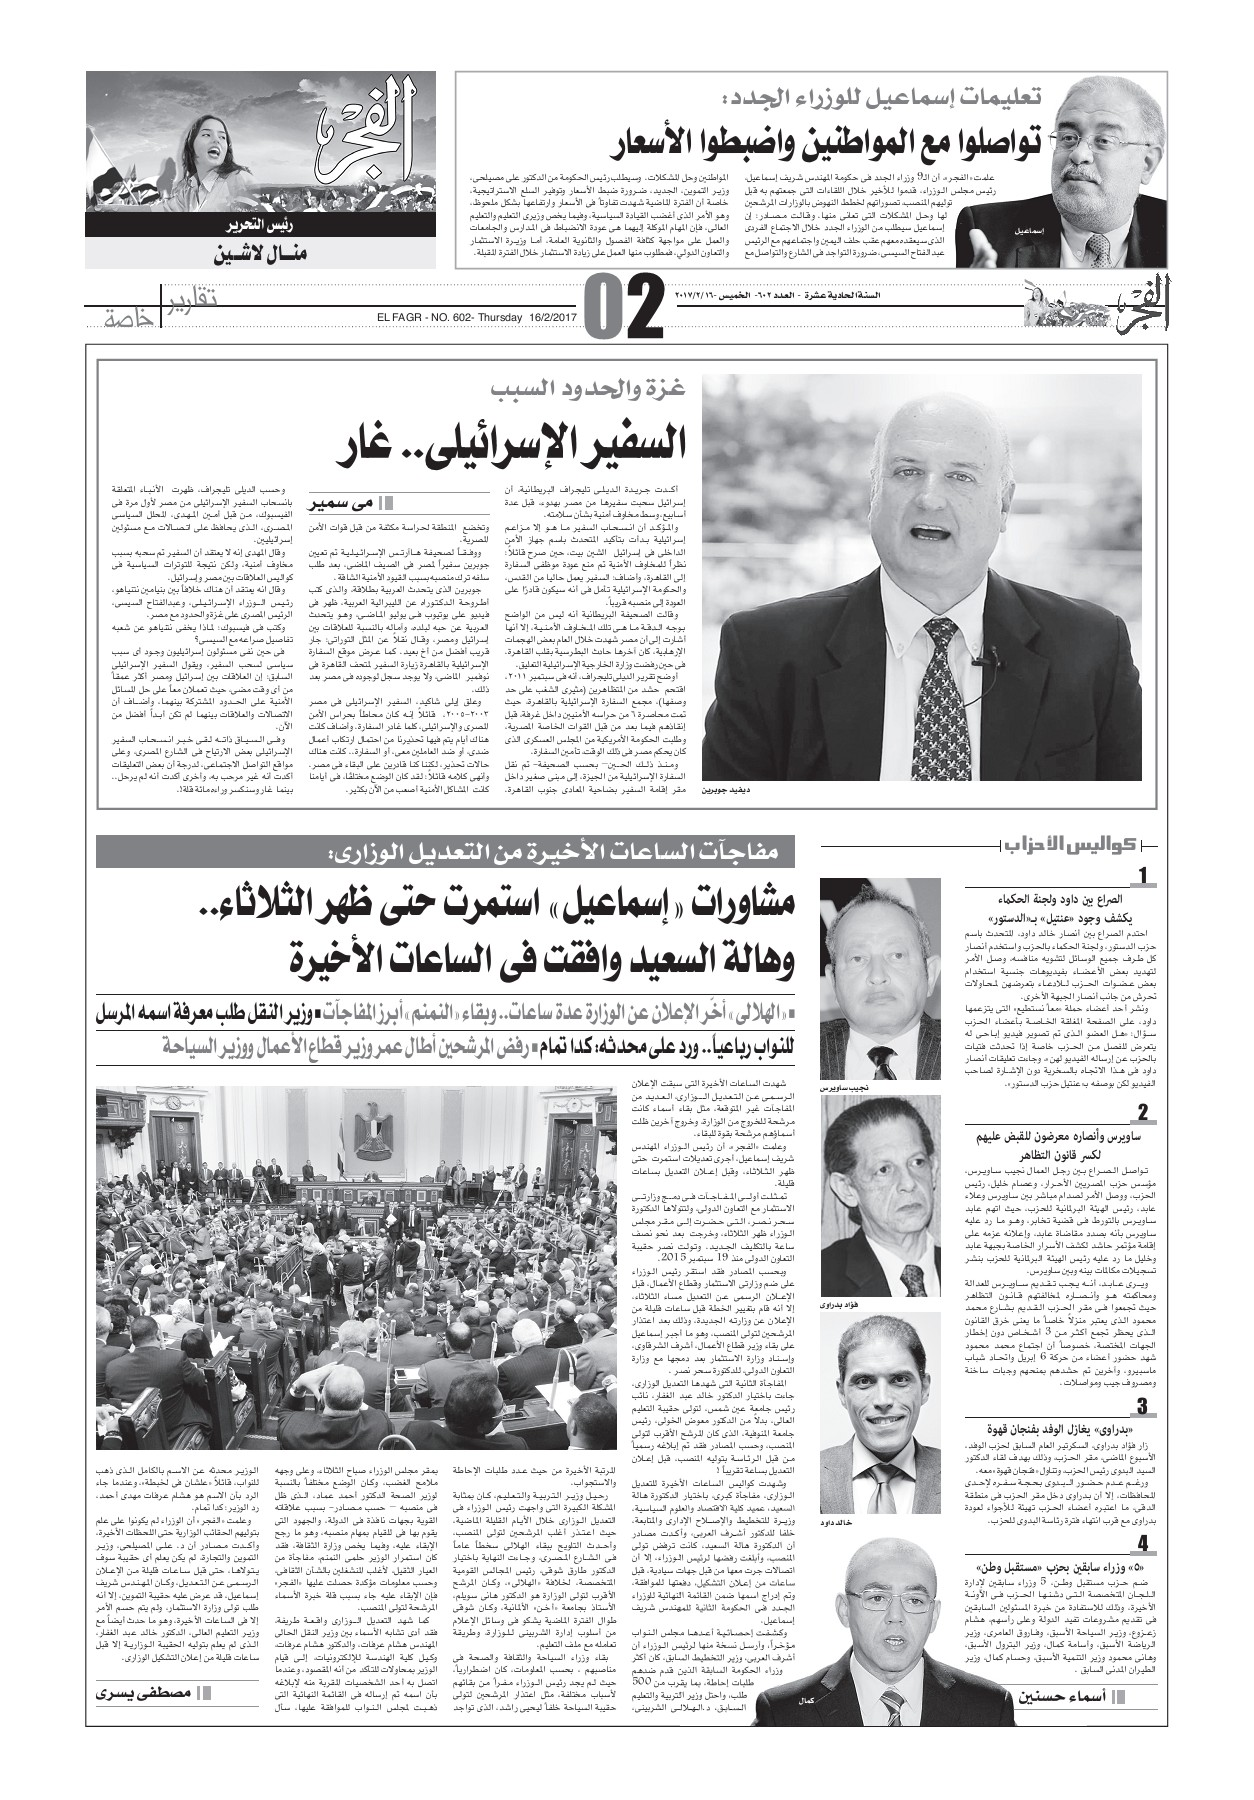 9bdad30fe Elfagr Newspaper Pages 1 - 16 - Text Version | AnyFlip